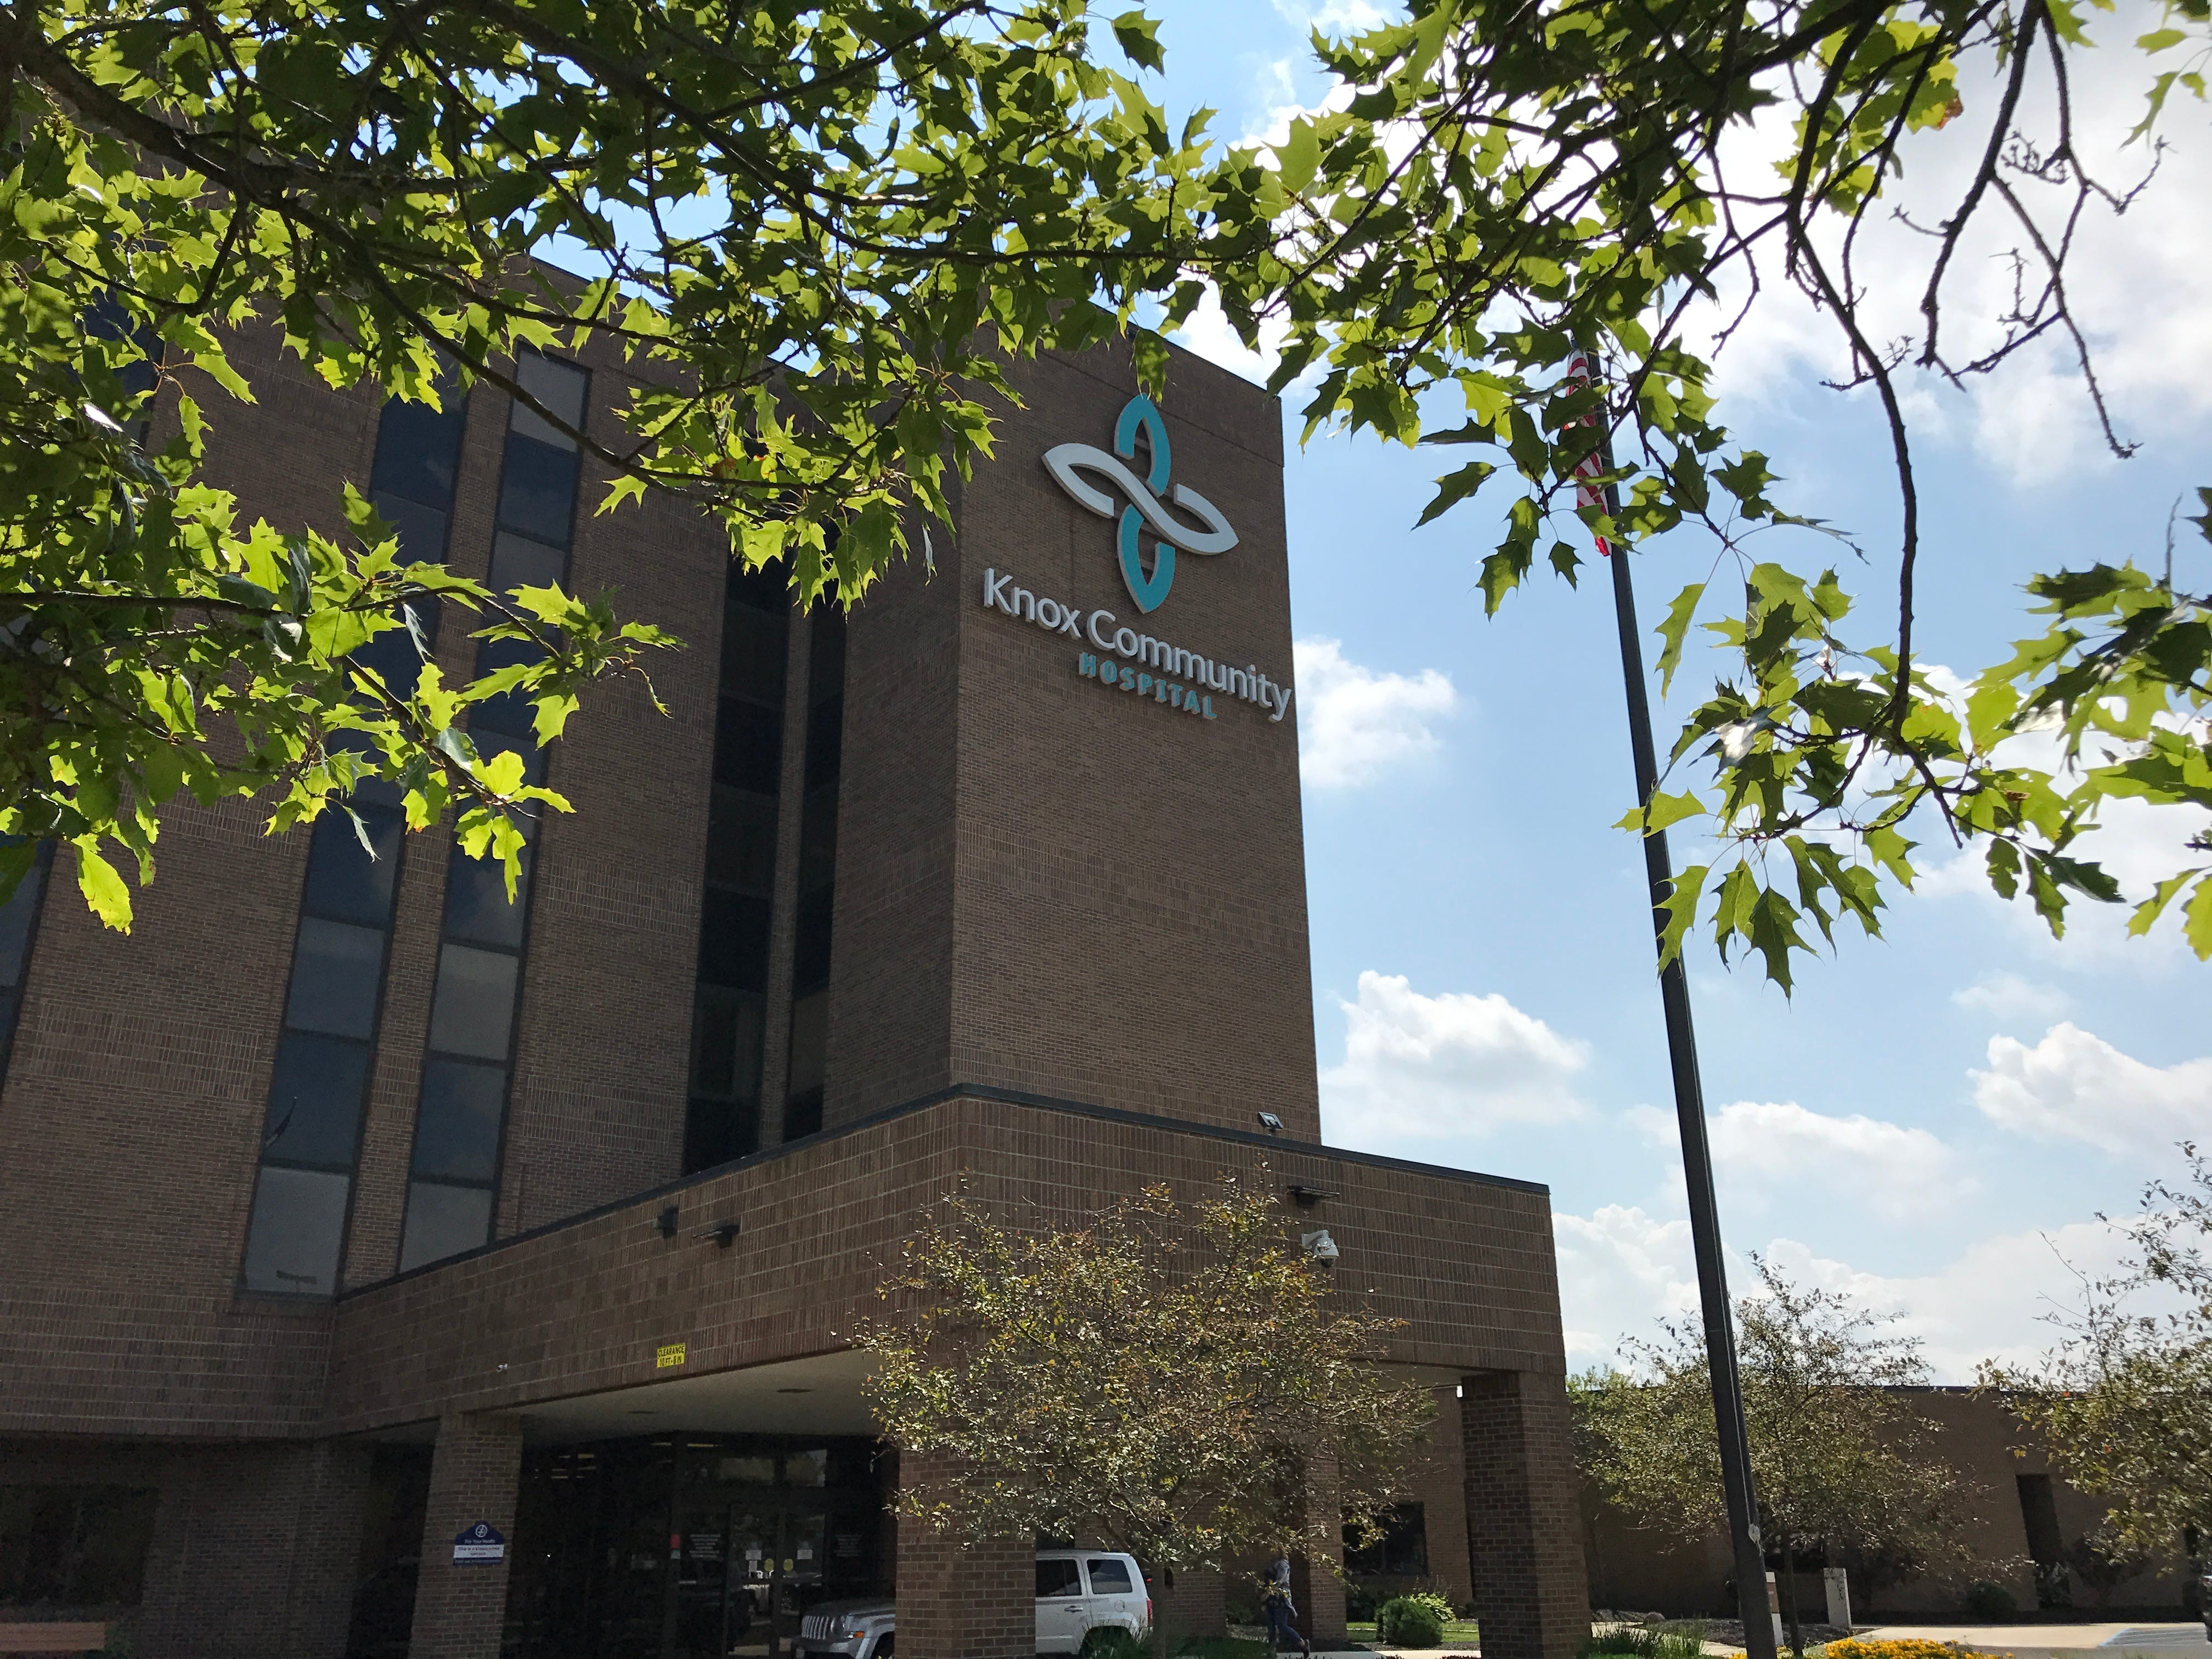 At Knox Community Hospital in Mount Vernon, Ohio, Ali Lowry bled internally after giving birth in 2013, but medical staff didn't recognize and act onthe warning signs for hours, according to court records.